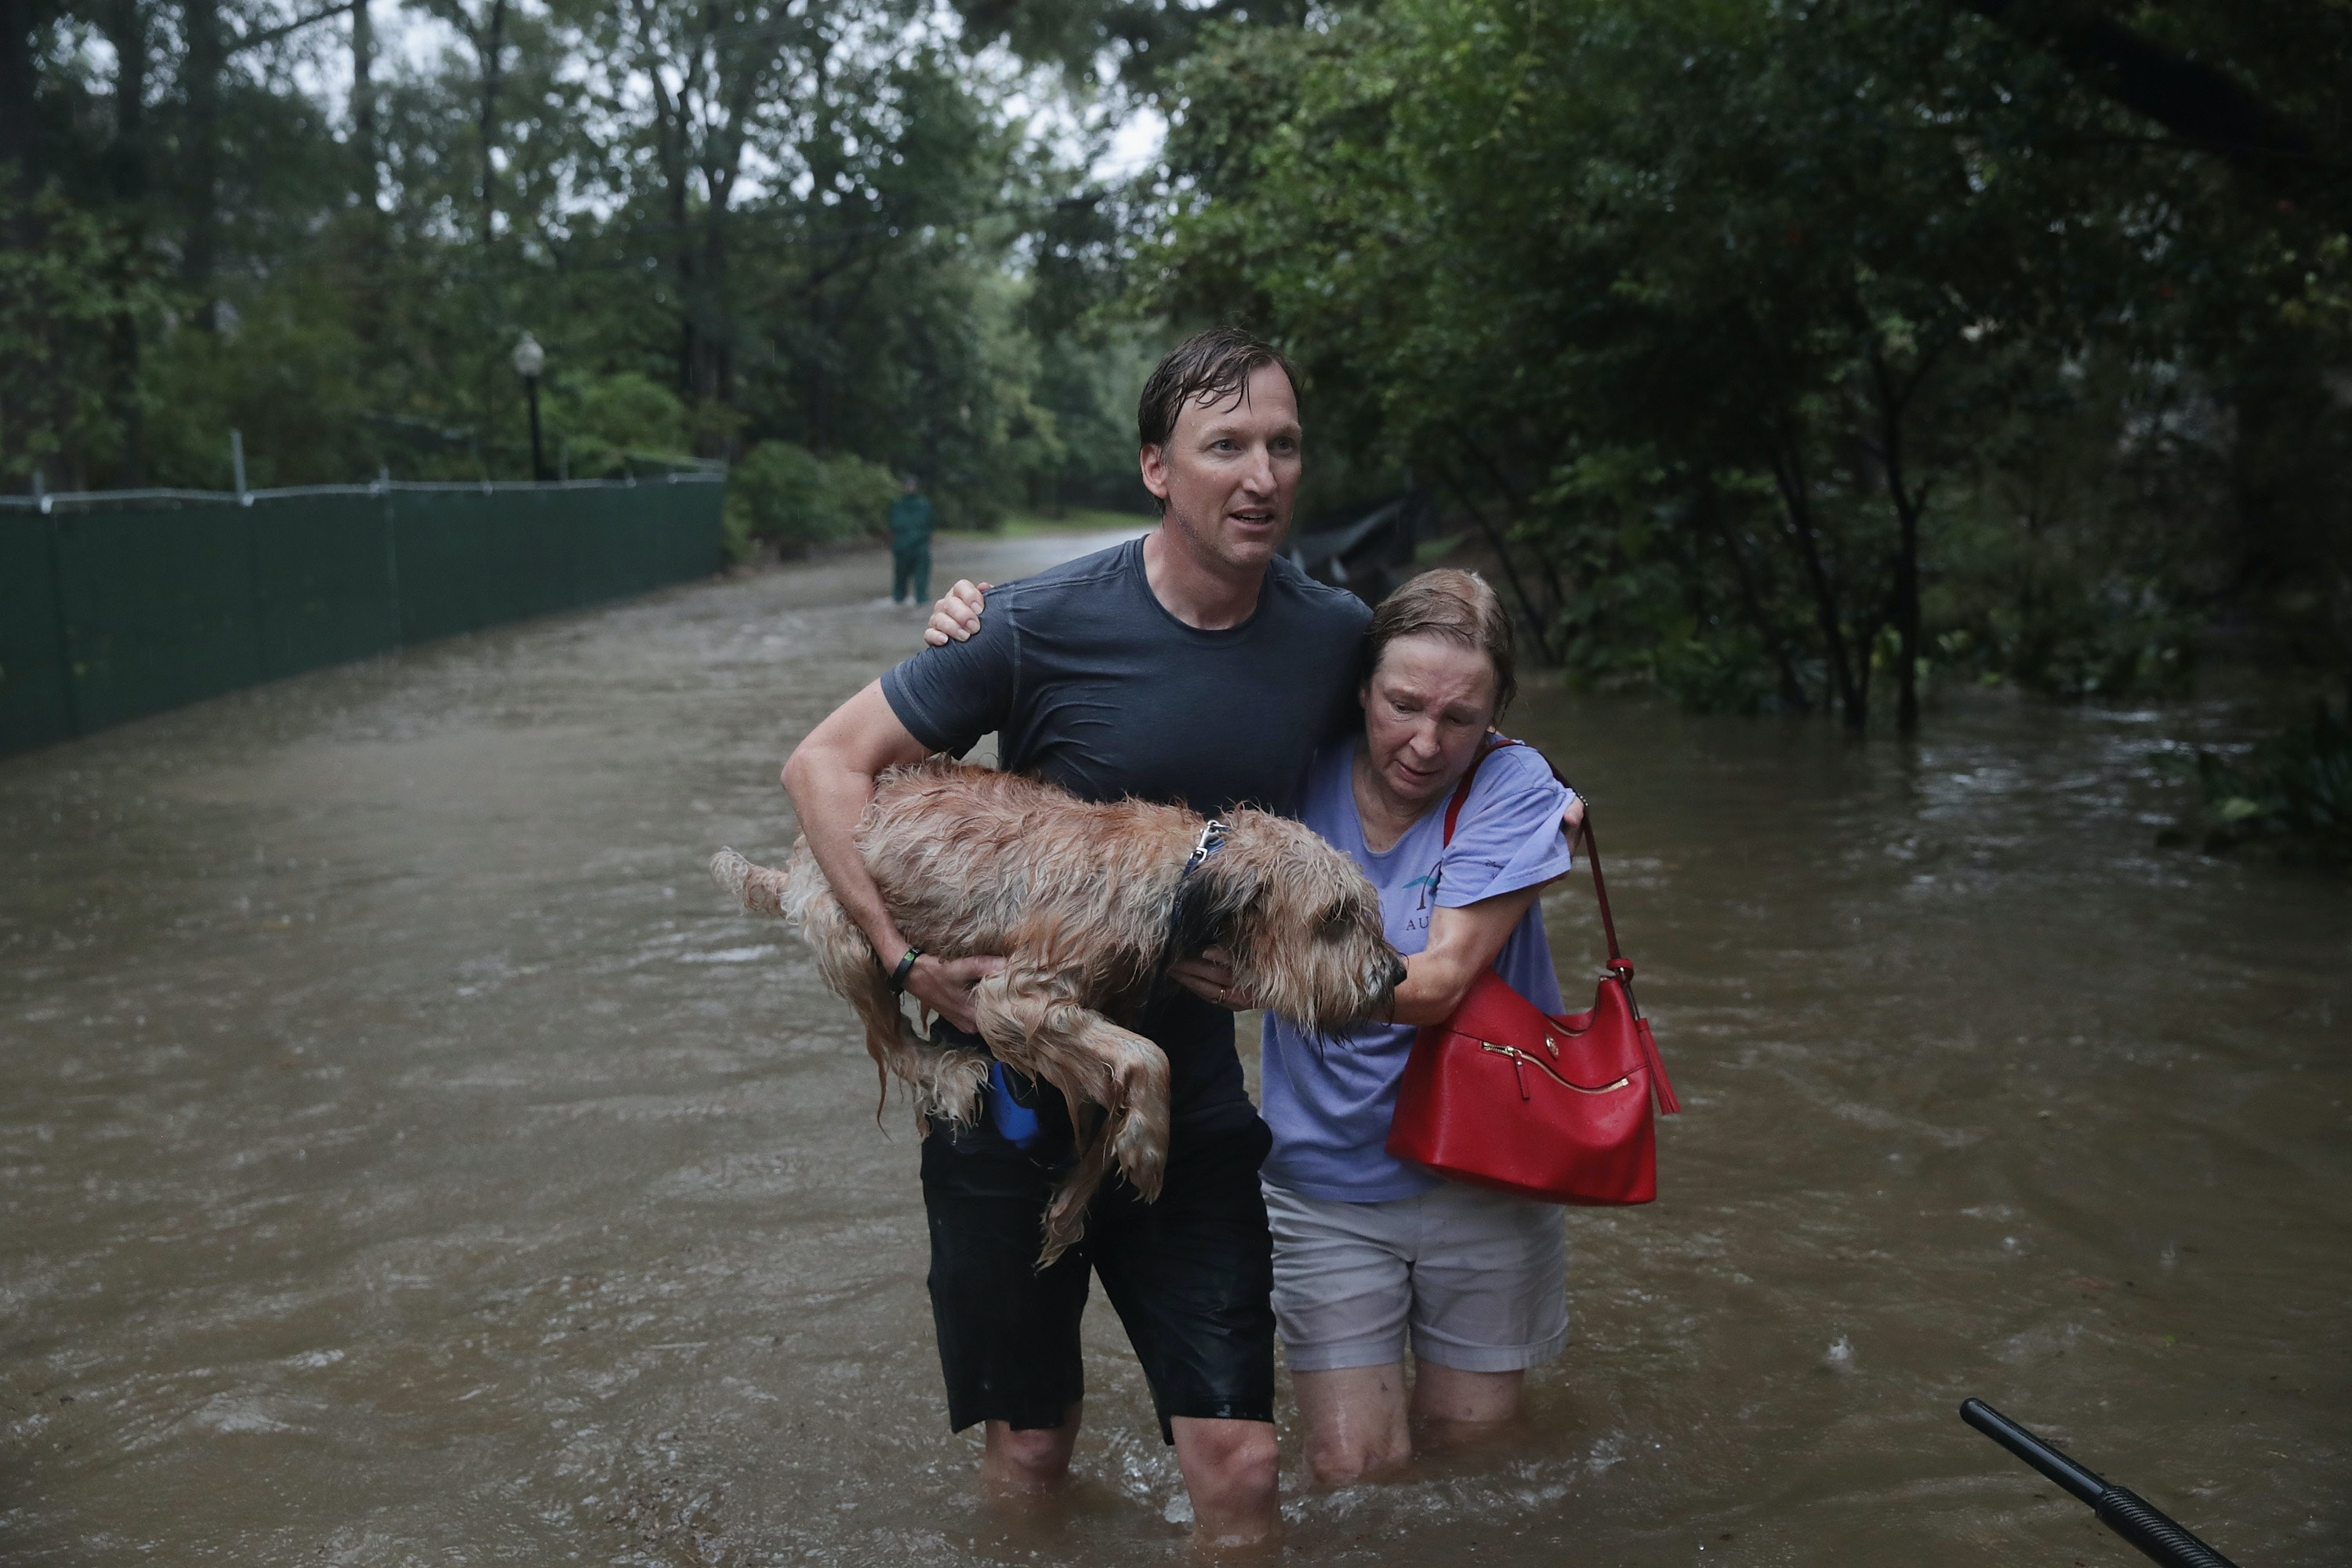 Hurricane Katrina survivor flees floodwaters again, this time in Texas